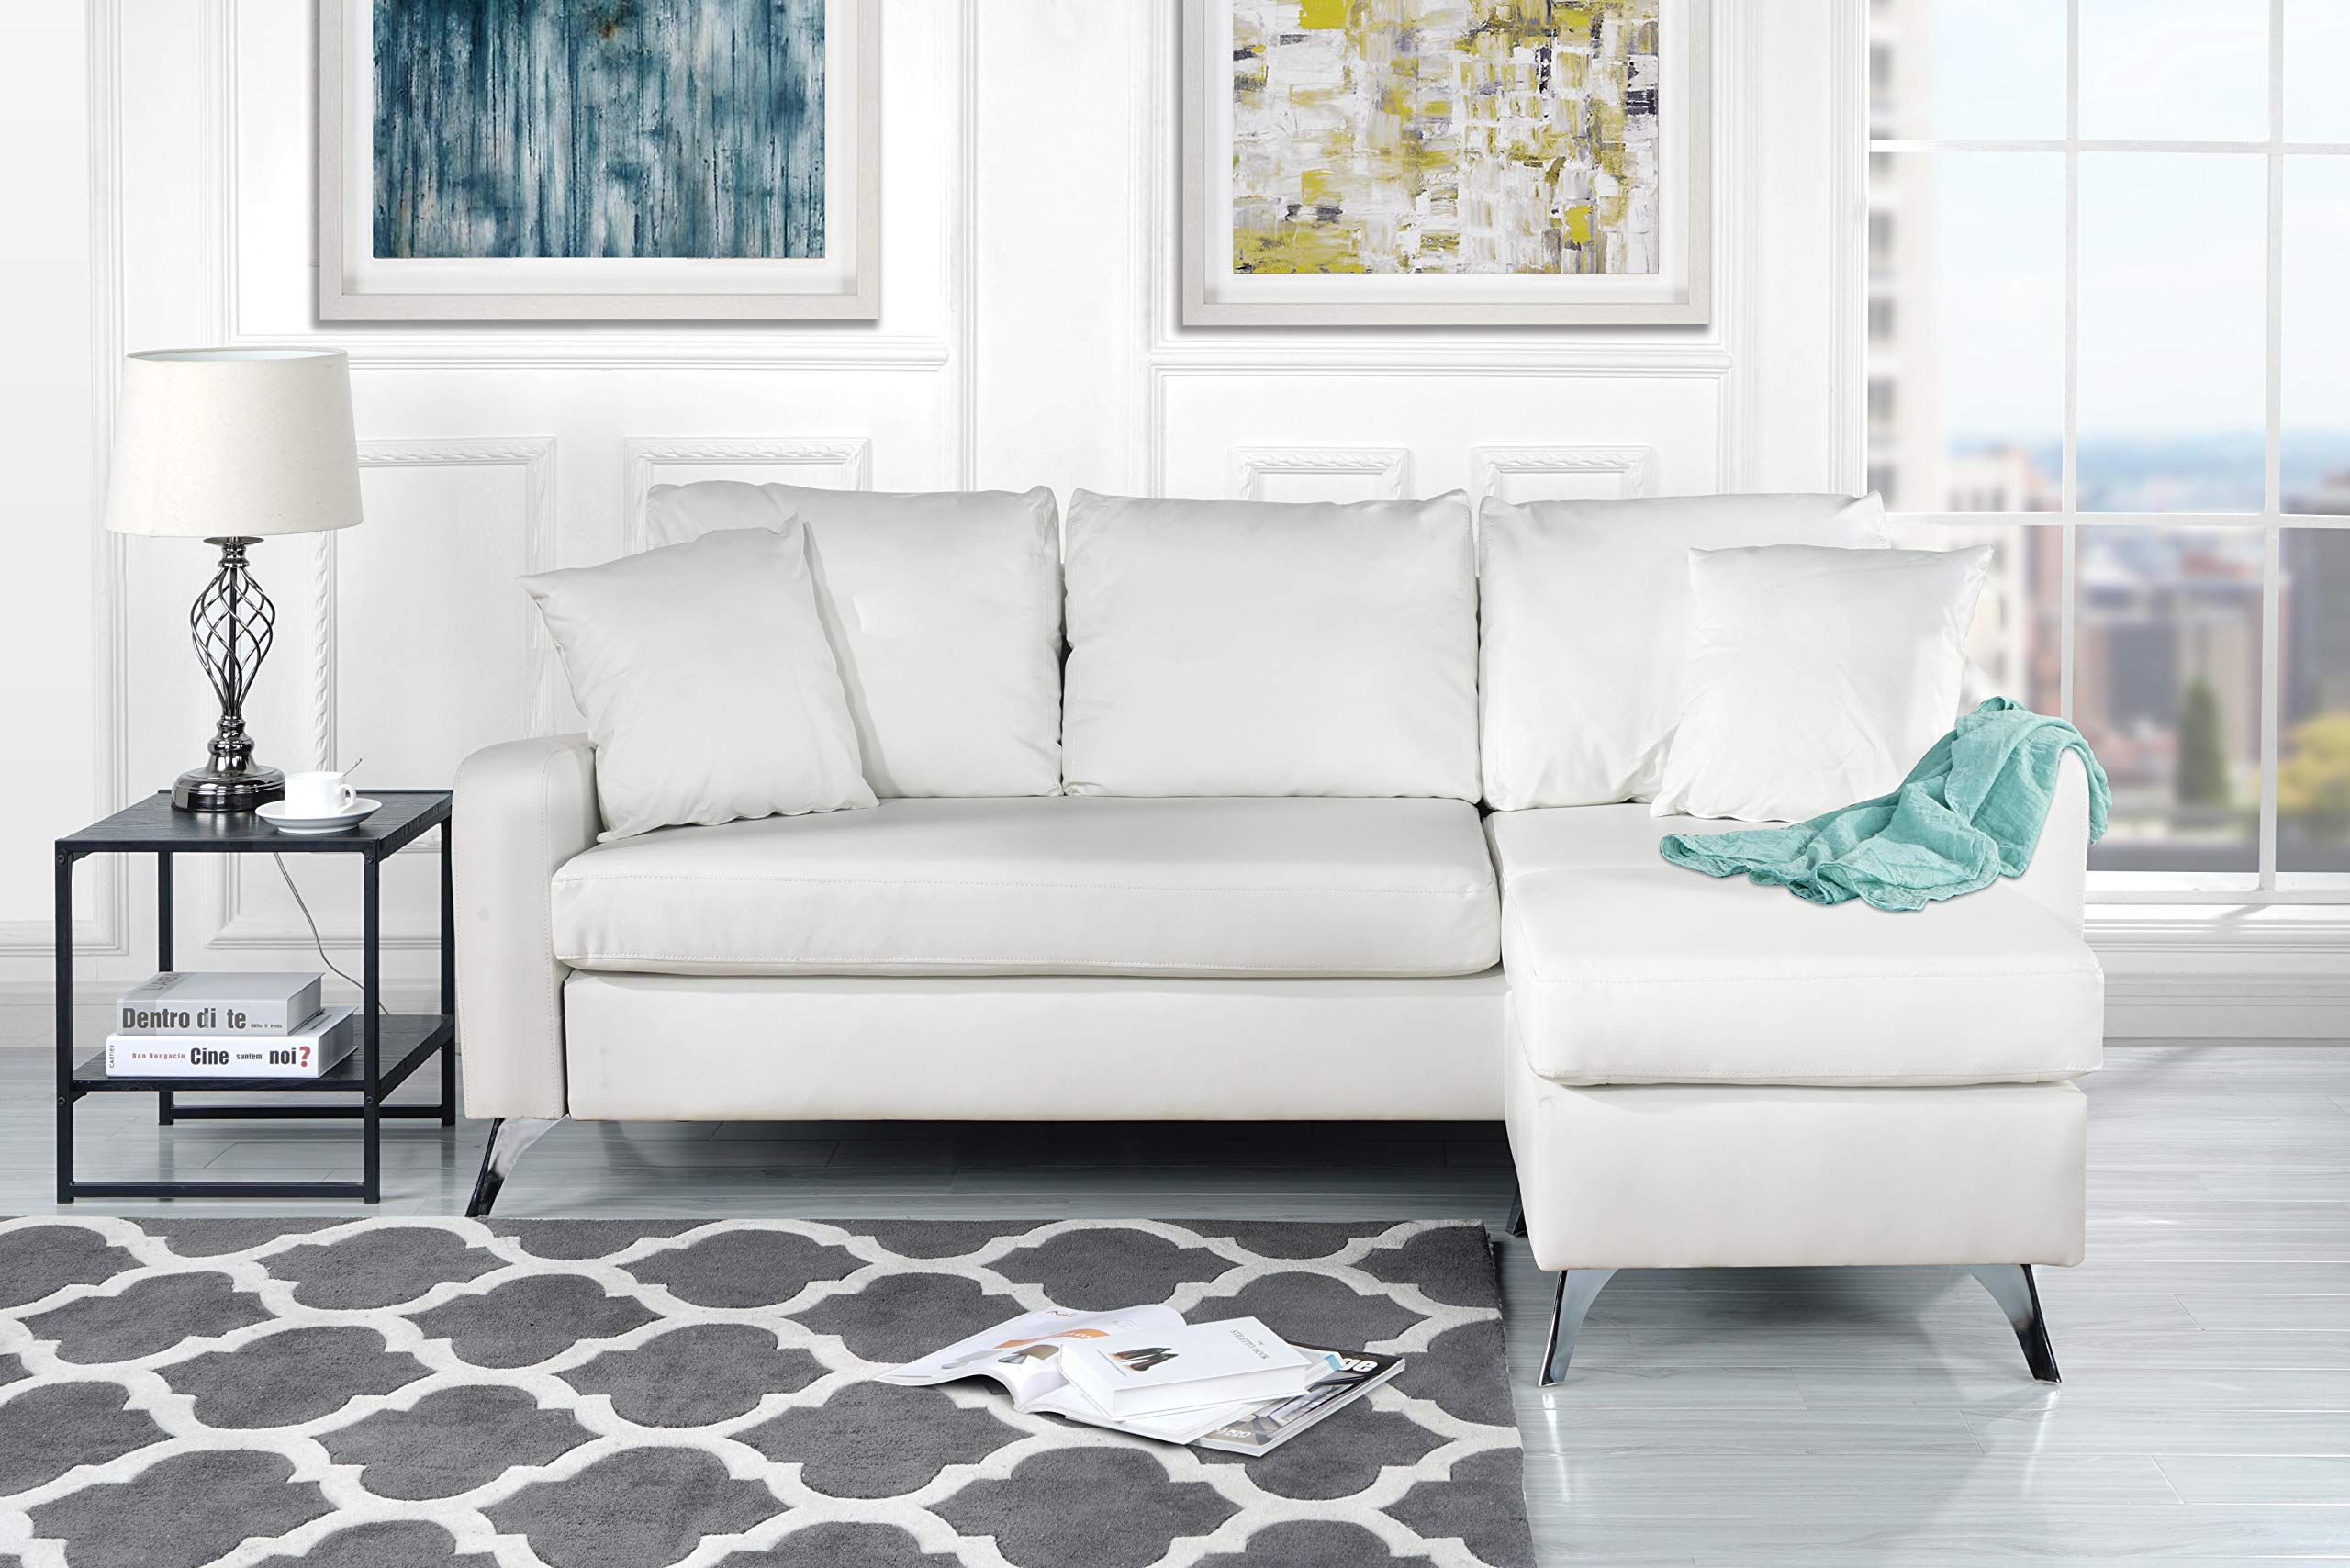 Divano Roma Furniture Bonded Sectional White Lavorist Sofas For Small Spaces Small Sectional Sofa Furniture